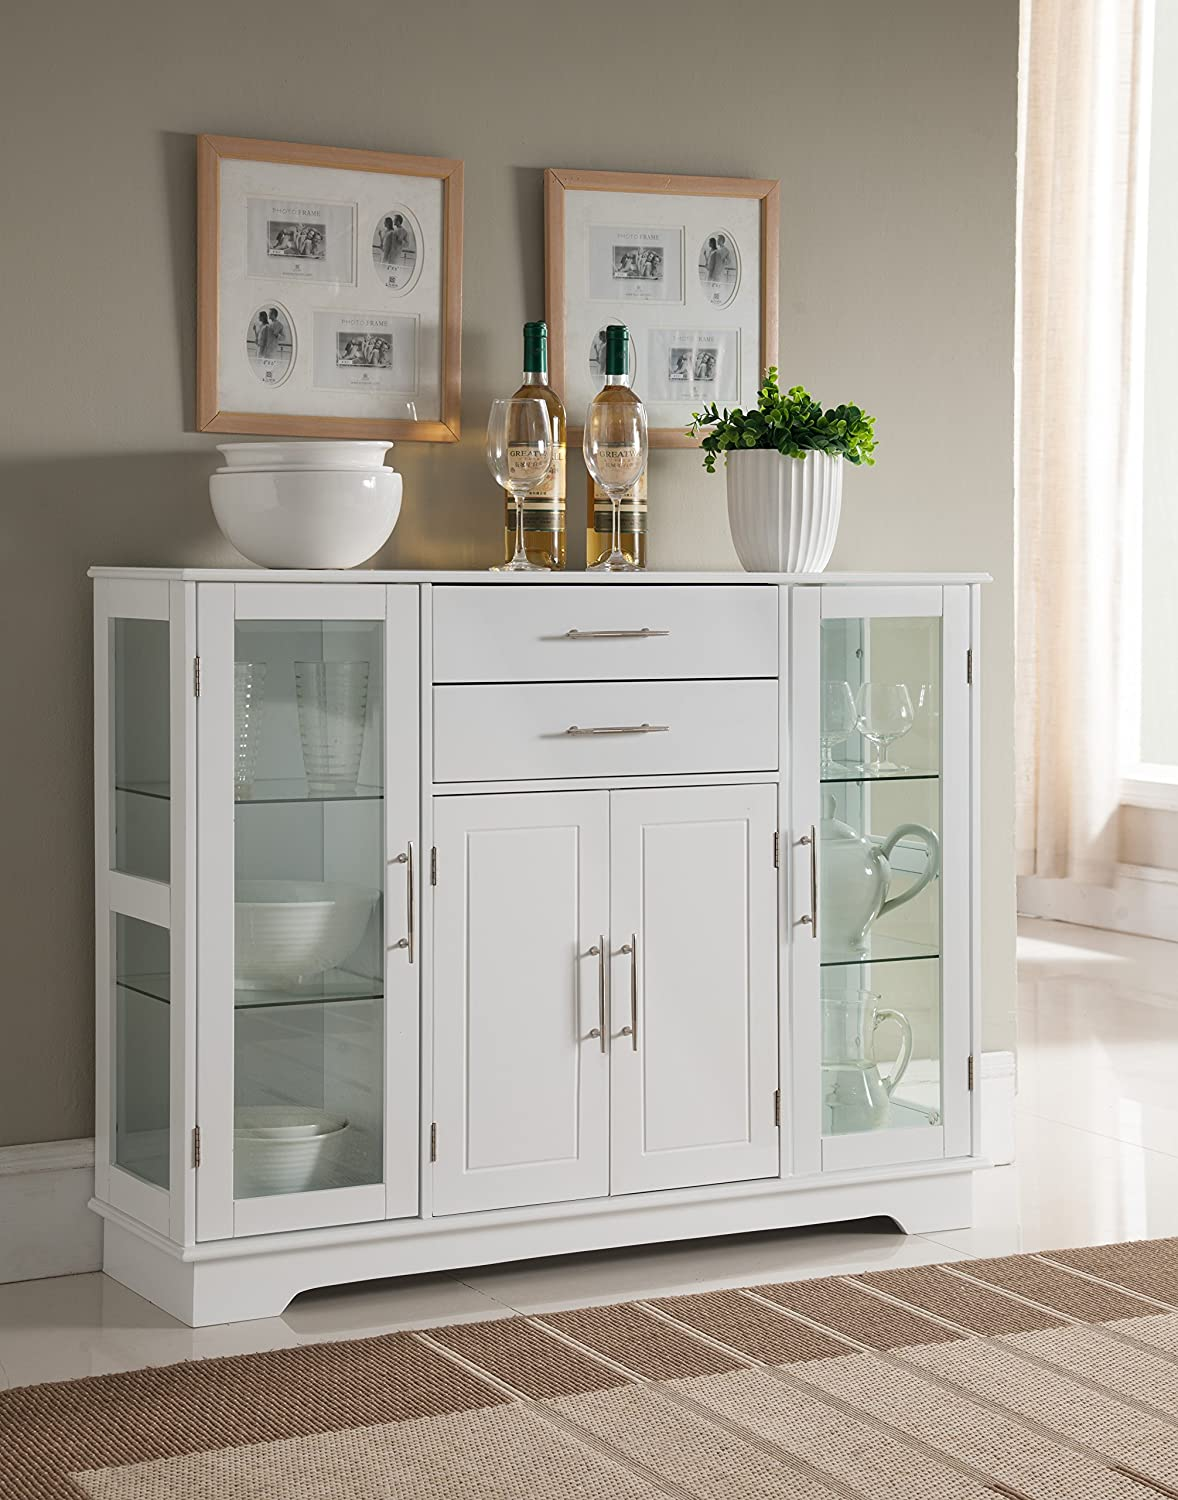 Interior Storage Cabinets Kitchen amazon com kings brand kitchen storage cabinet buffet with glass doors white buffets sideboards